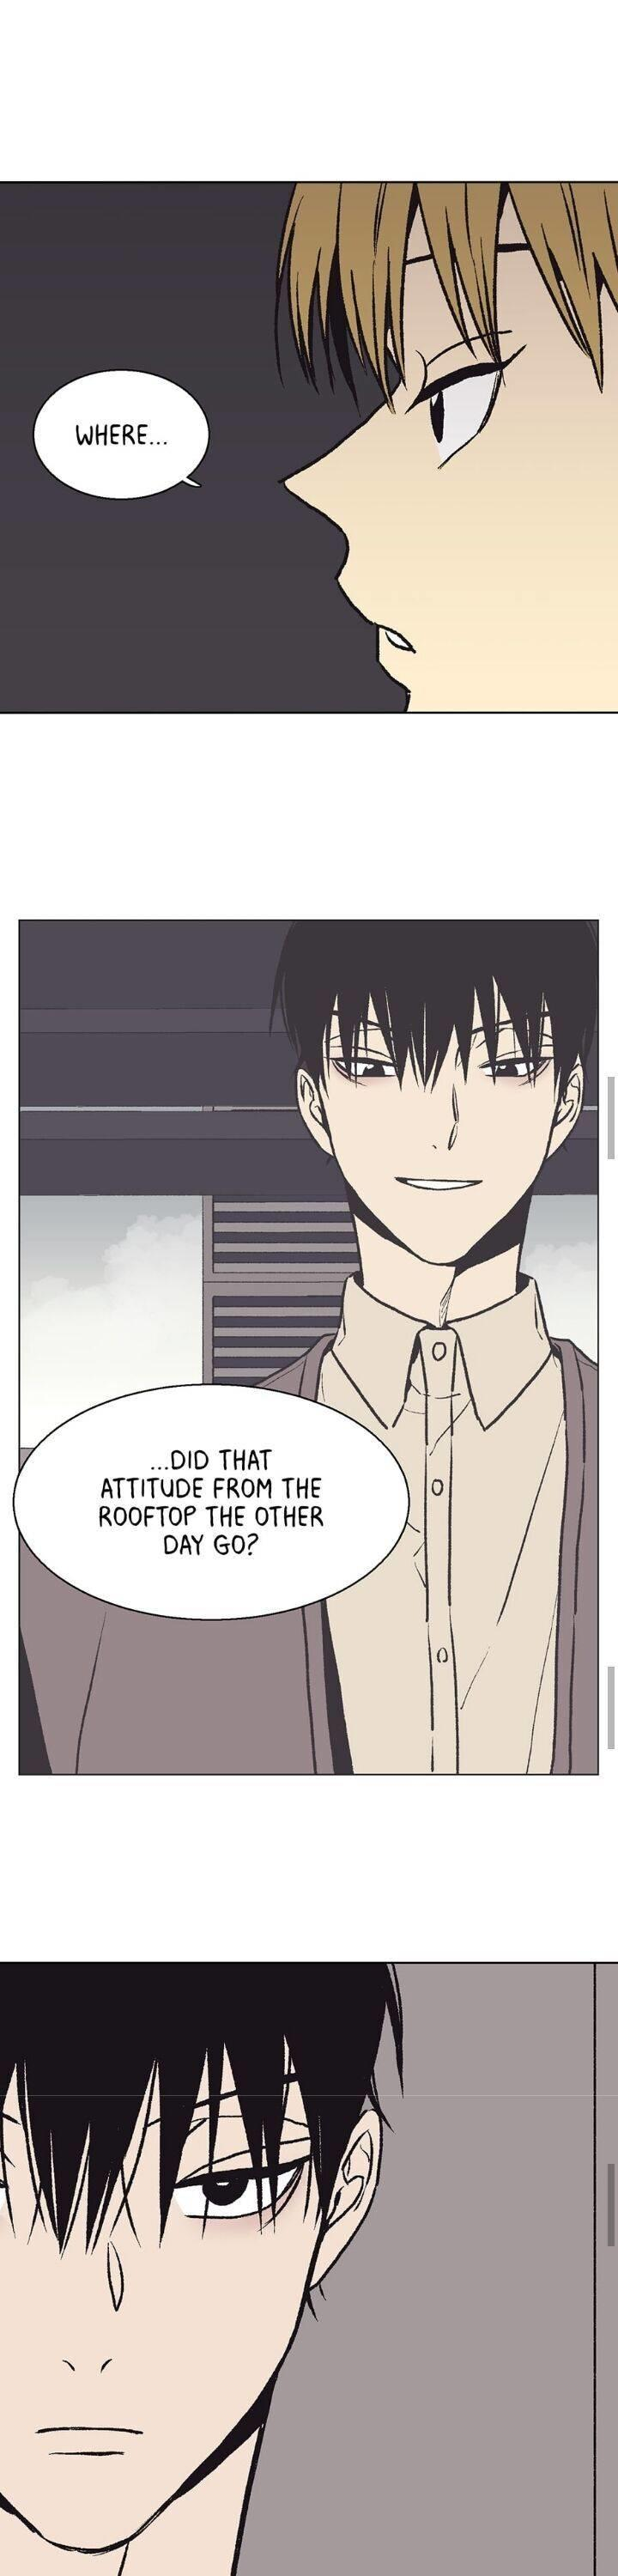 The Spooky Love Tale Of Gongchan Seol Chapter 51 page 11 - Mangakakalots.com